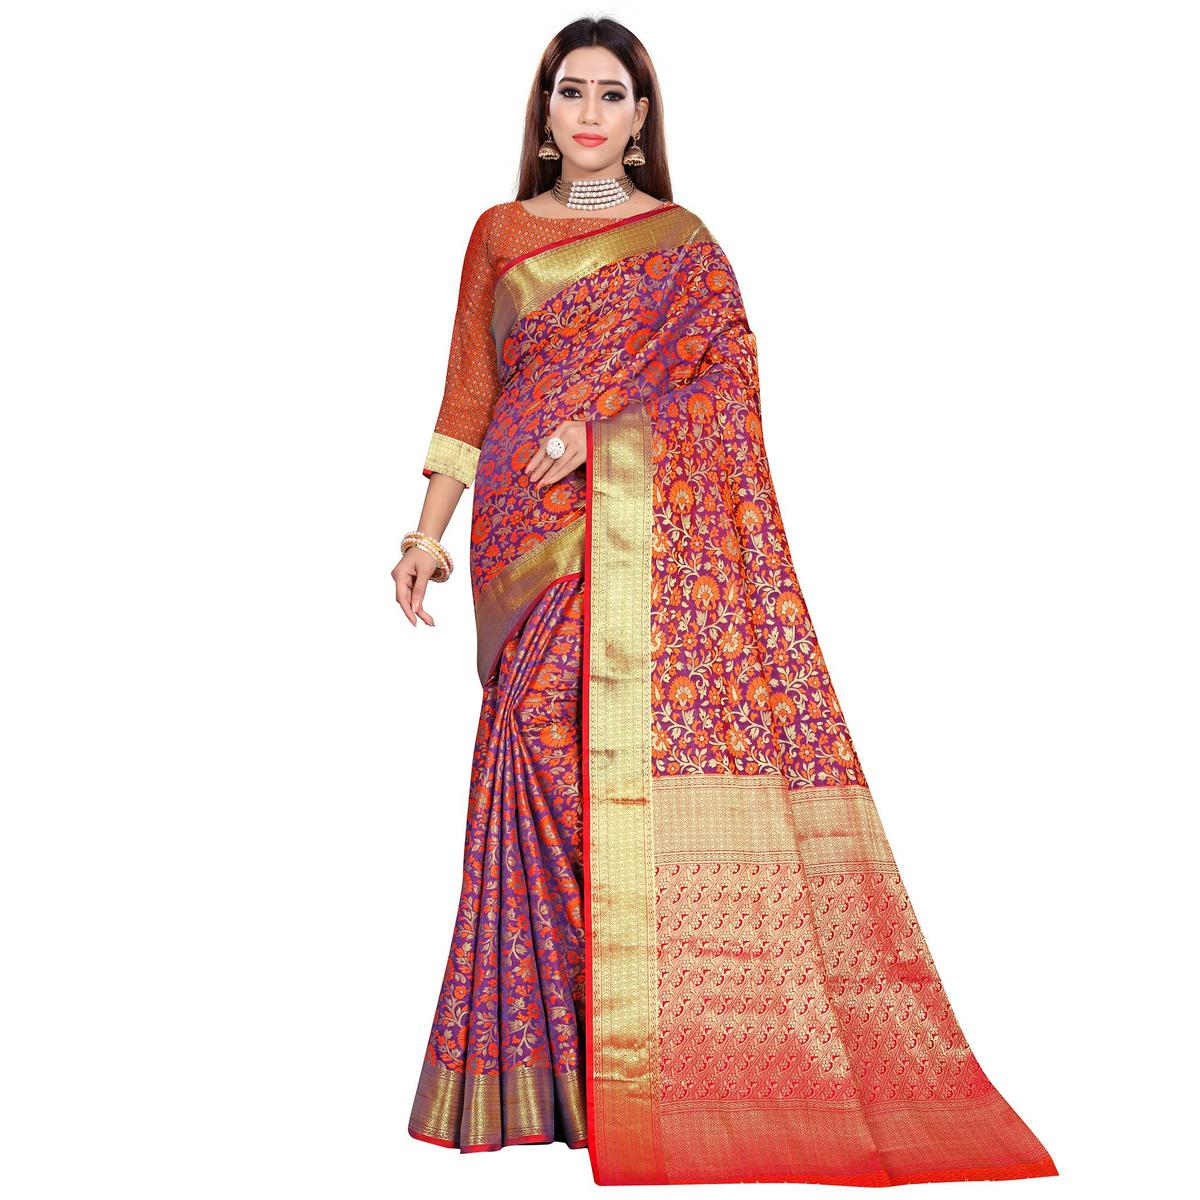 Groovy Purple Colored Festive Wear Woven Banarasi Silk Saree